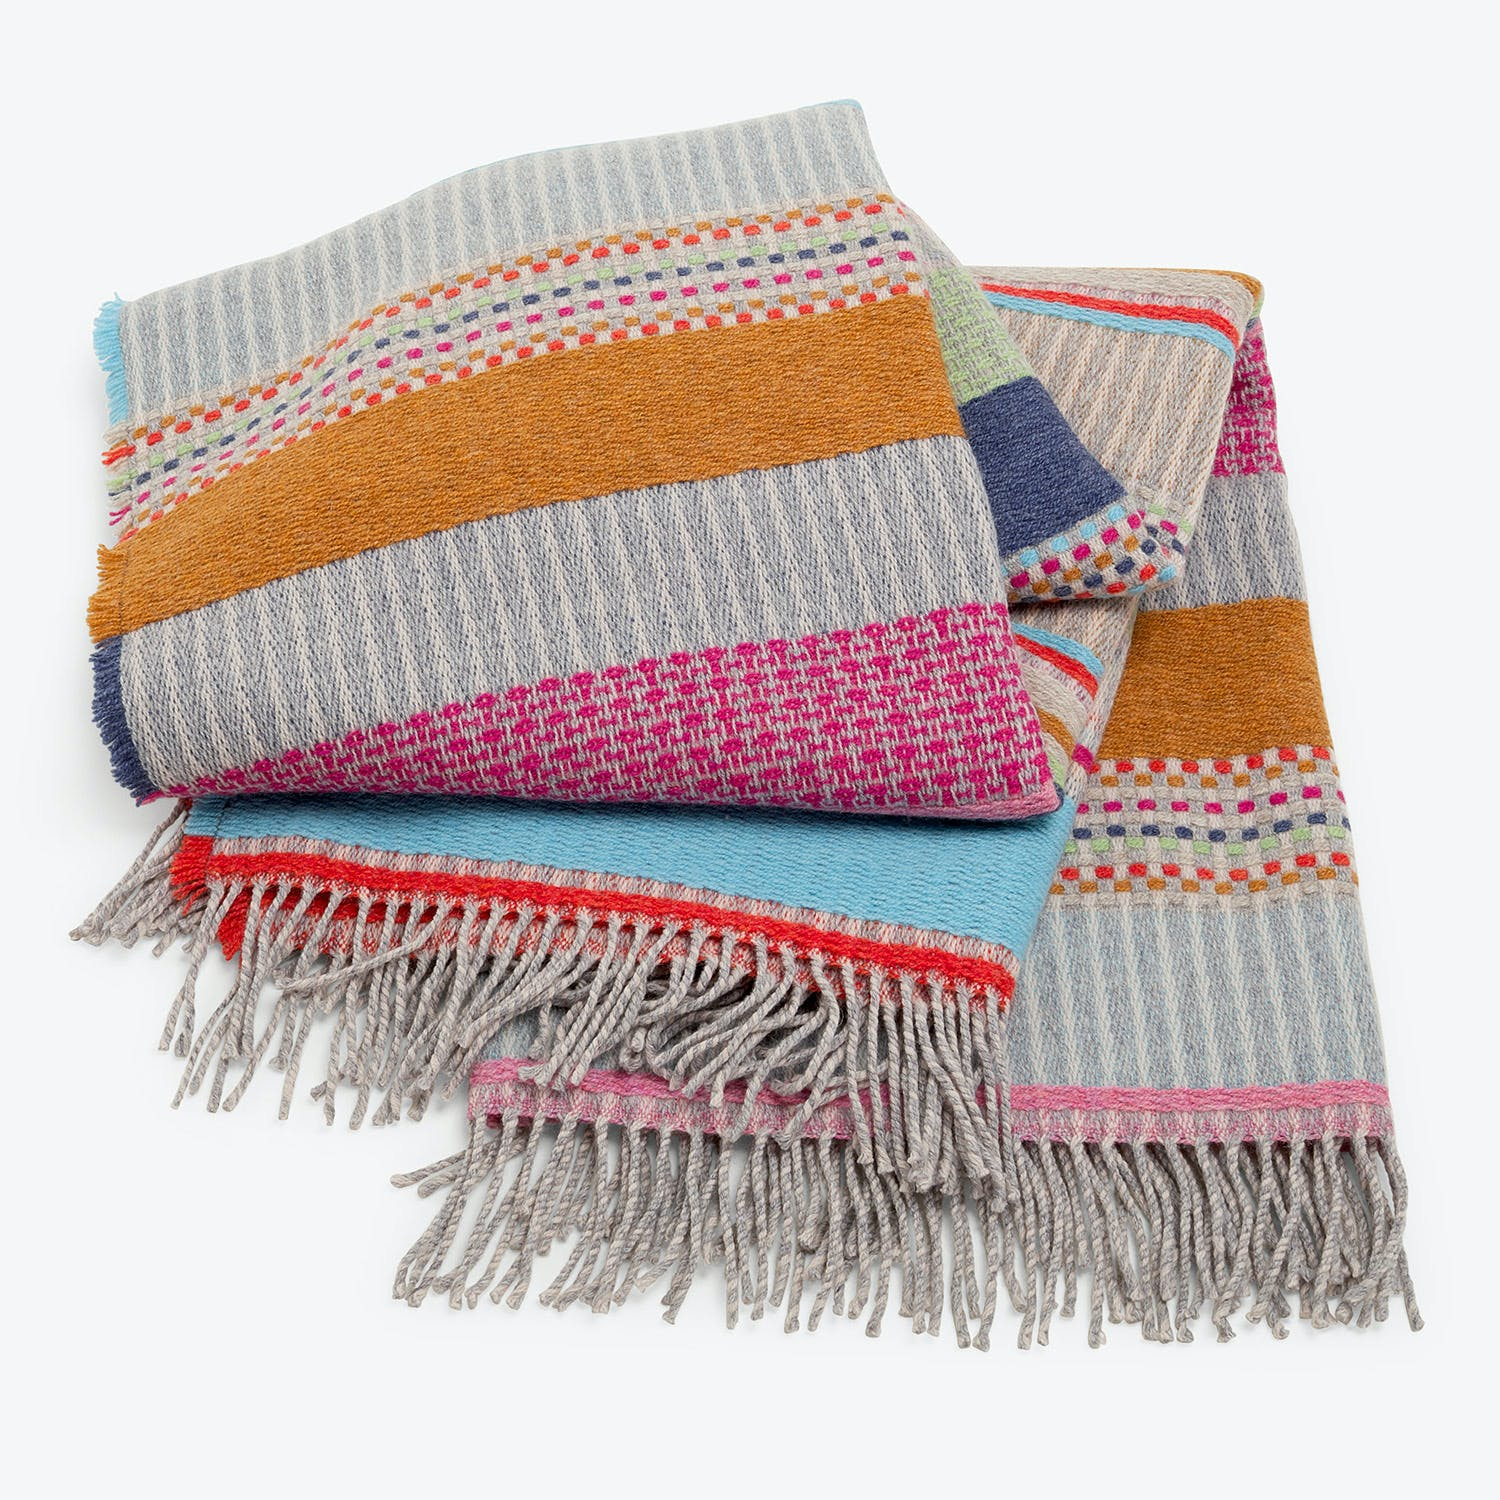 Wallace Sewell Dot Throw Multicolor Pink